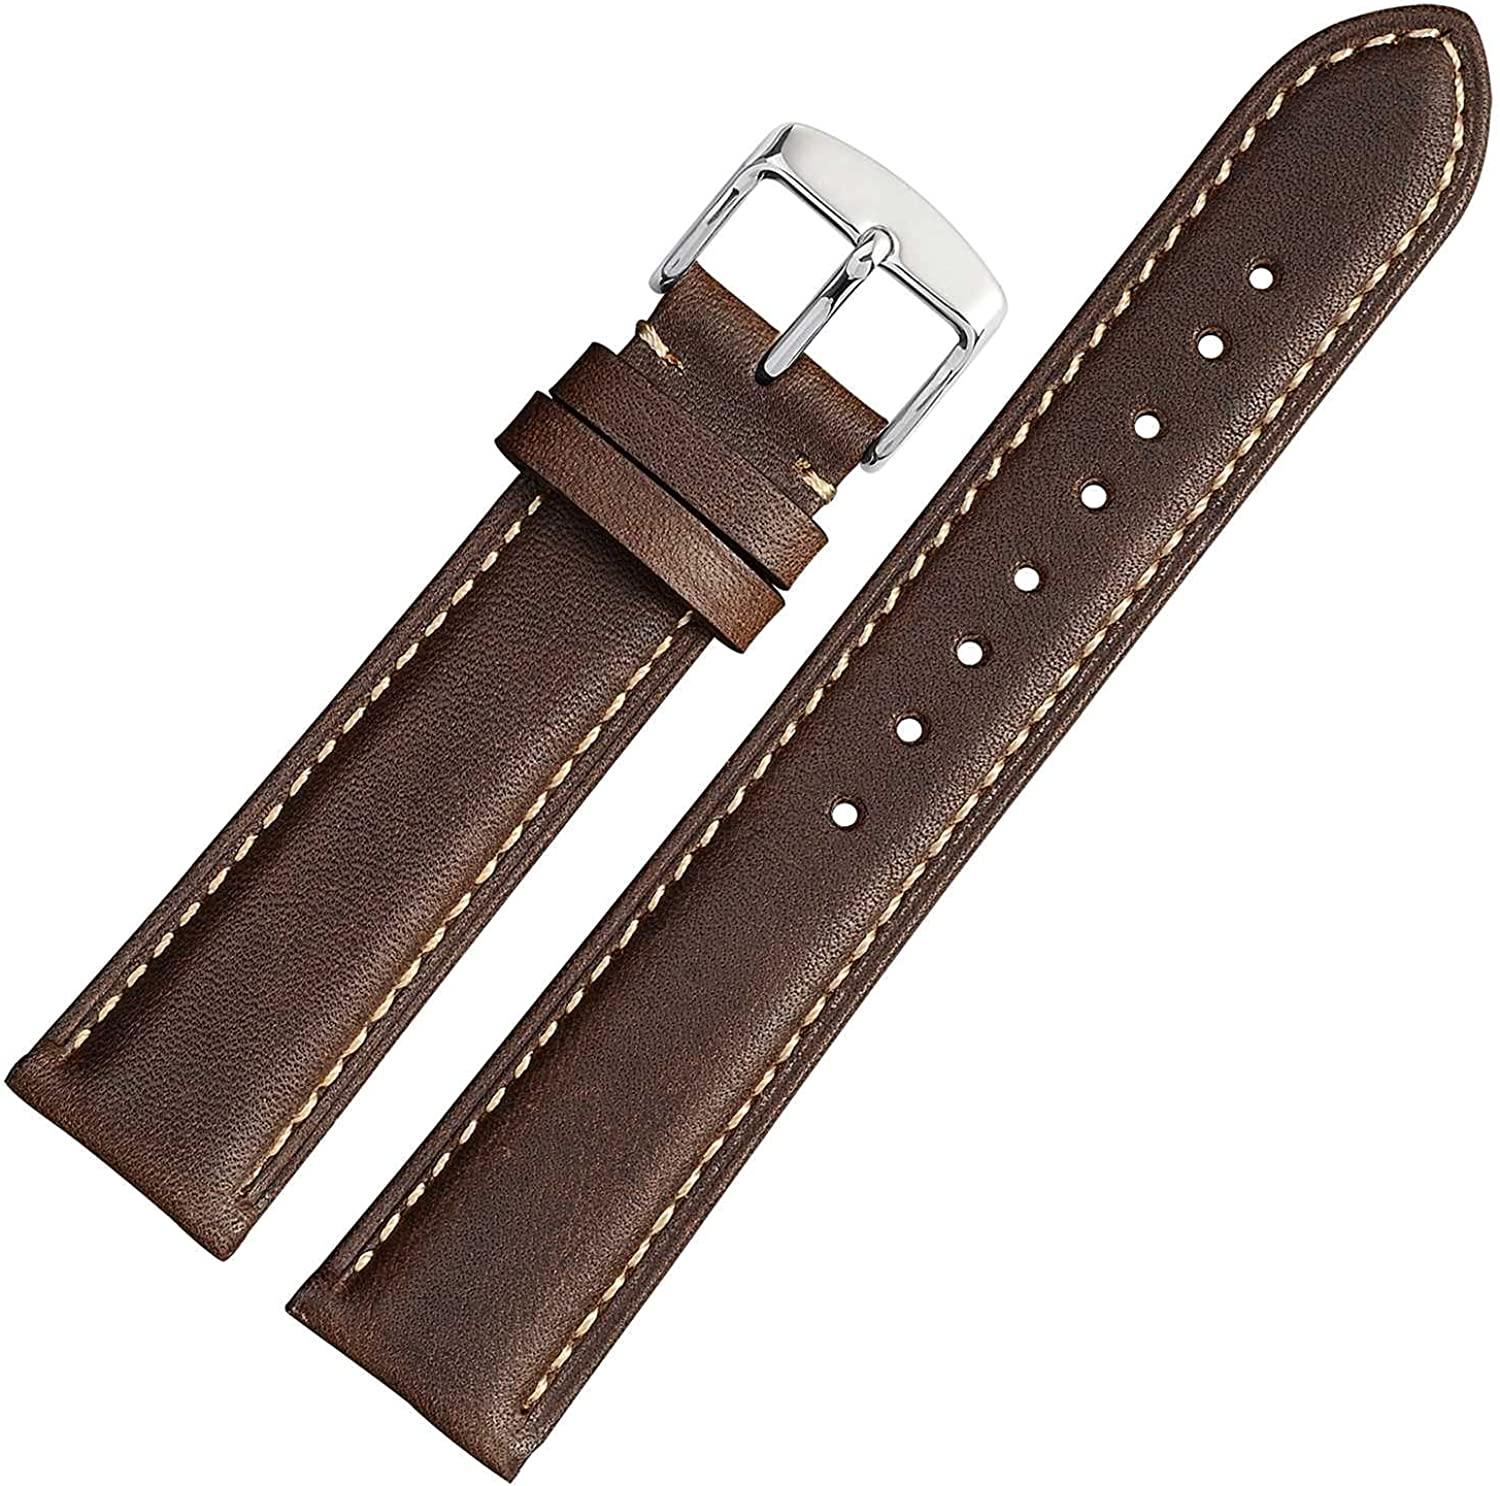 WOCCI Vintage Leather Watch Bands with Stainless Silver Buckle, Replacement Strap 14mm 16mm 18mm 19mm 20mm 21mm 22mm 23mm 24mm